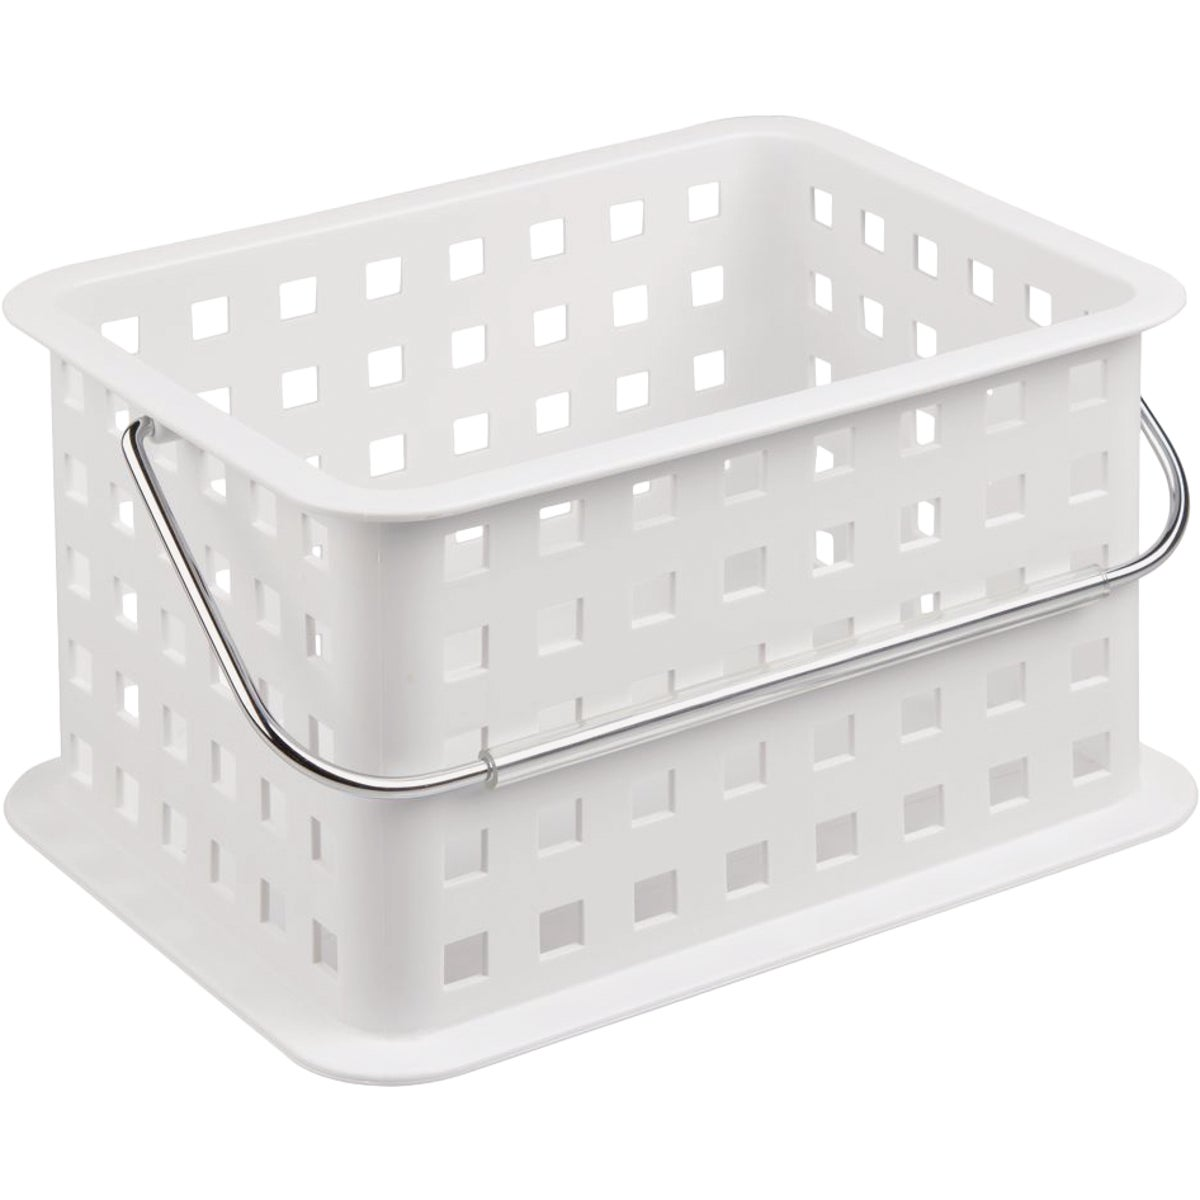 SMALL PLASTIC BASKET - 46201 by Interdesign Inc